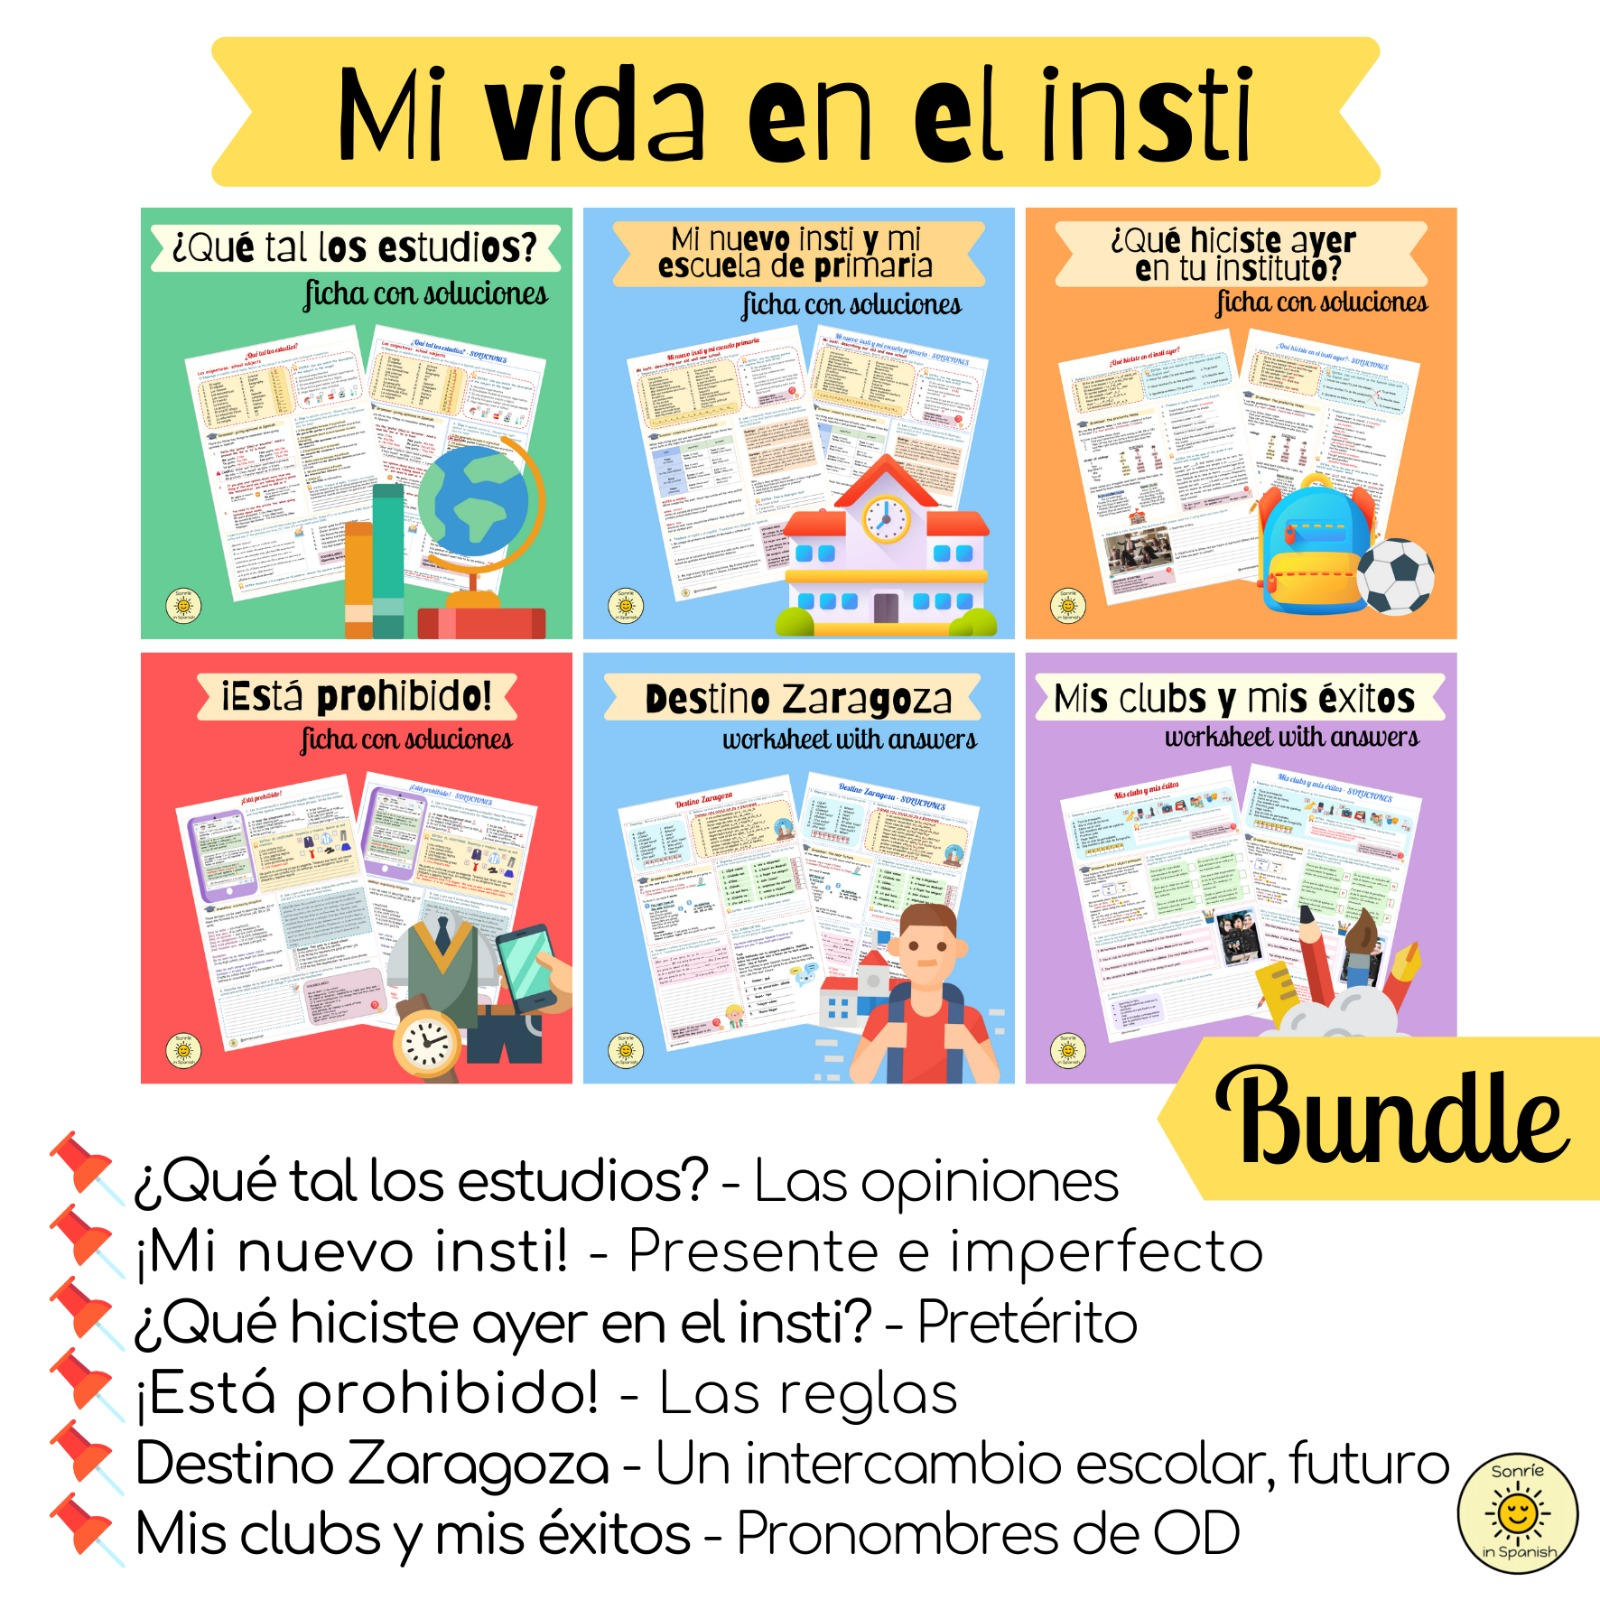 Mi vida en el insti. Pack de fichas con soluciones sobre el tema del  instituto y los estudios. Spanish GCSE bundle on the topic of High School. Worksheets with answers